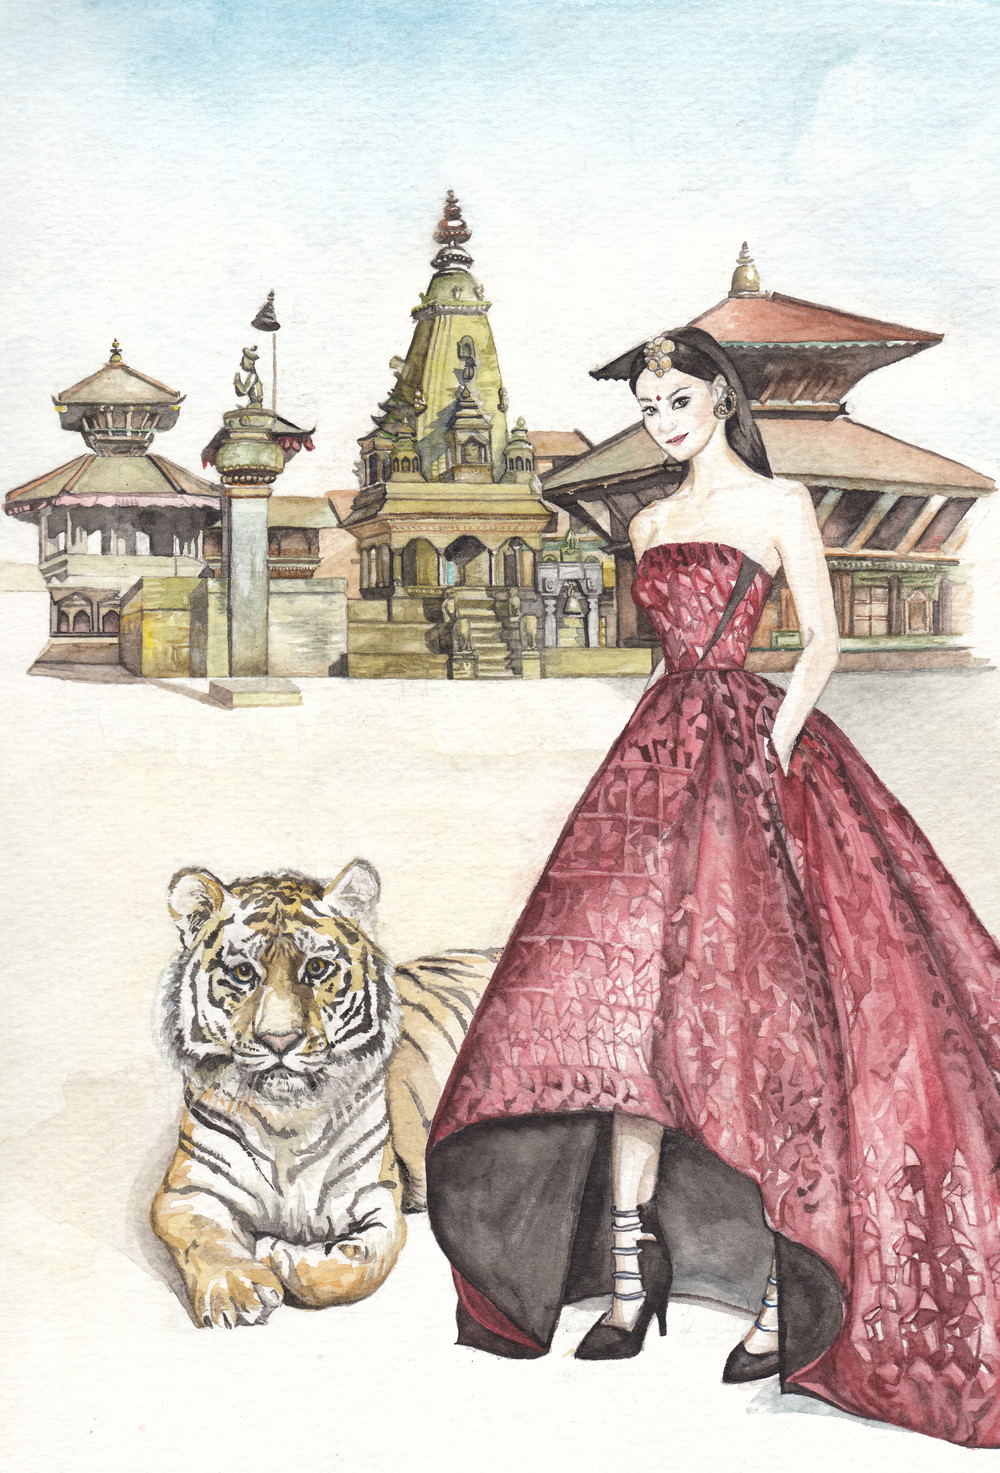 A Nepalese girl wearing Prabal Gurung's Resort 2015 gown with a native tiger from Nepal standing in front of the Vatsala Durga temple in Bhaktapur's Square